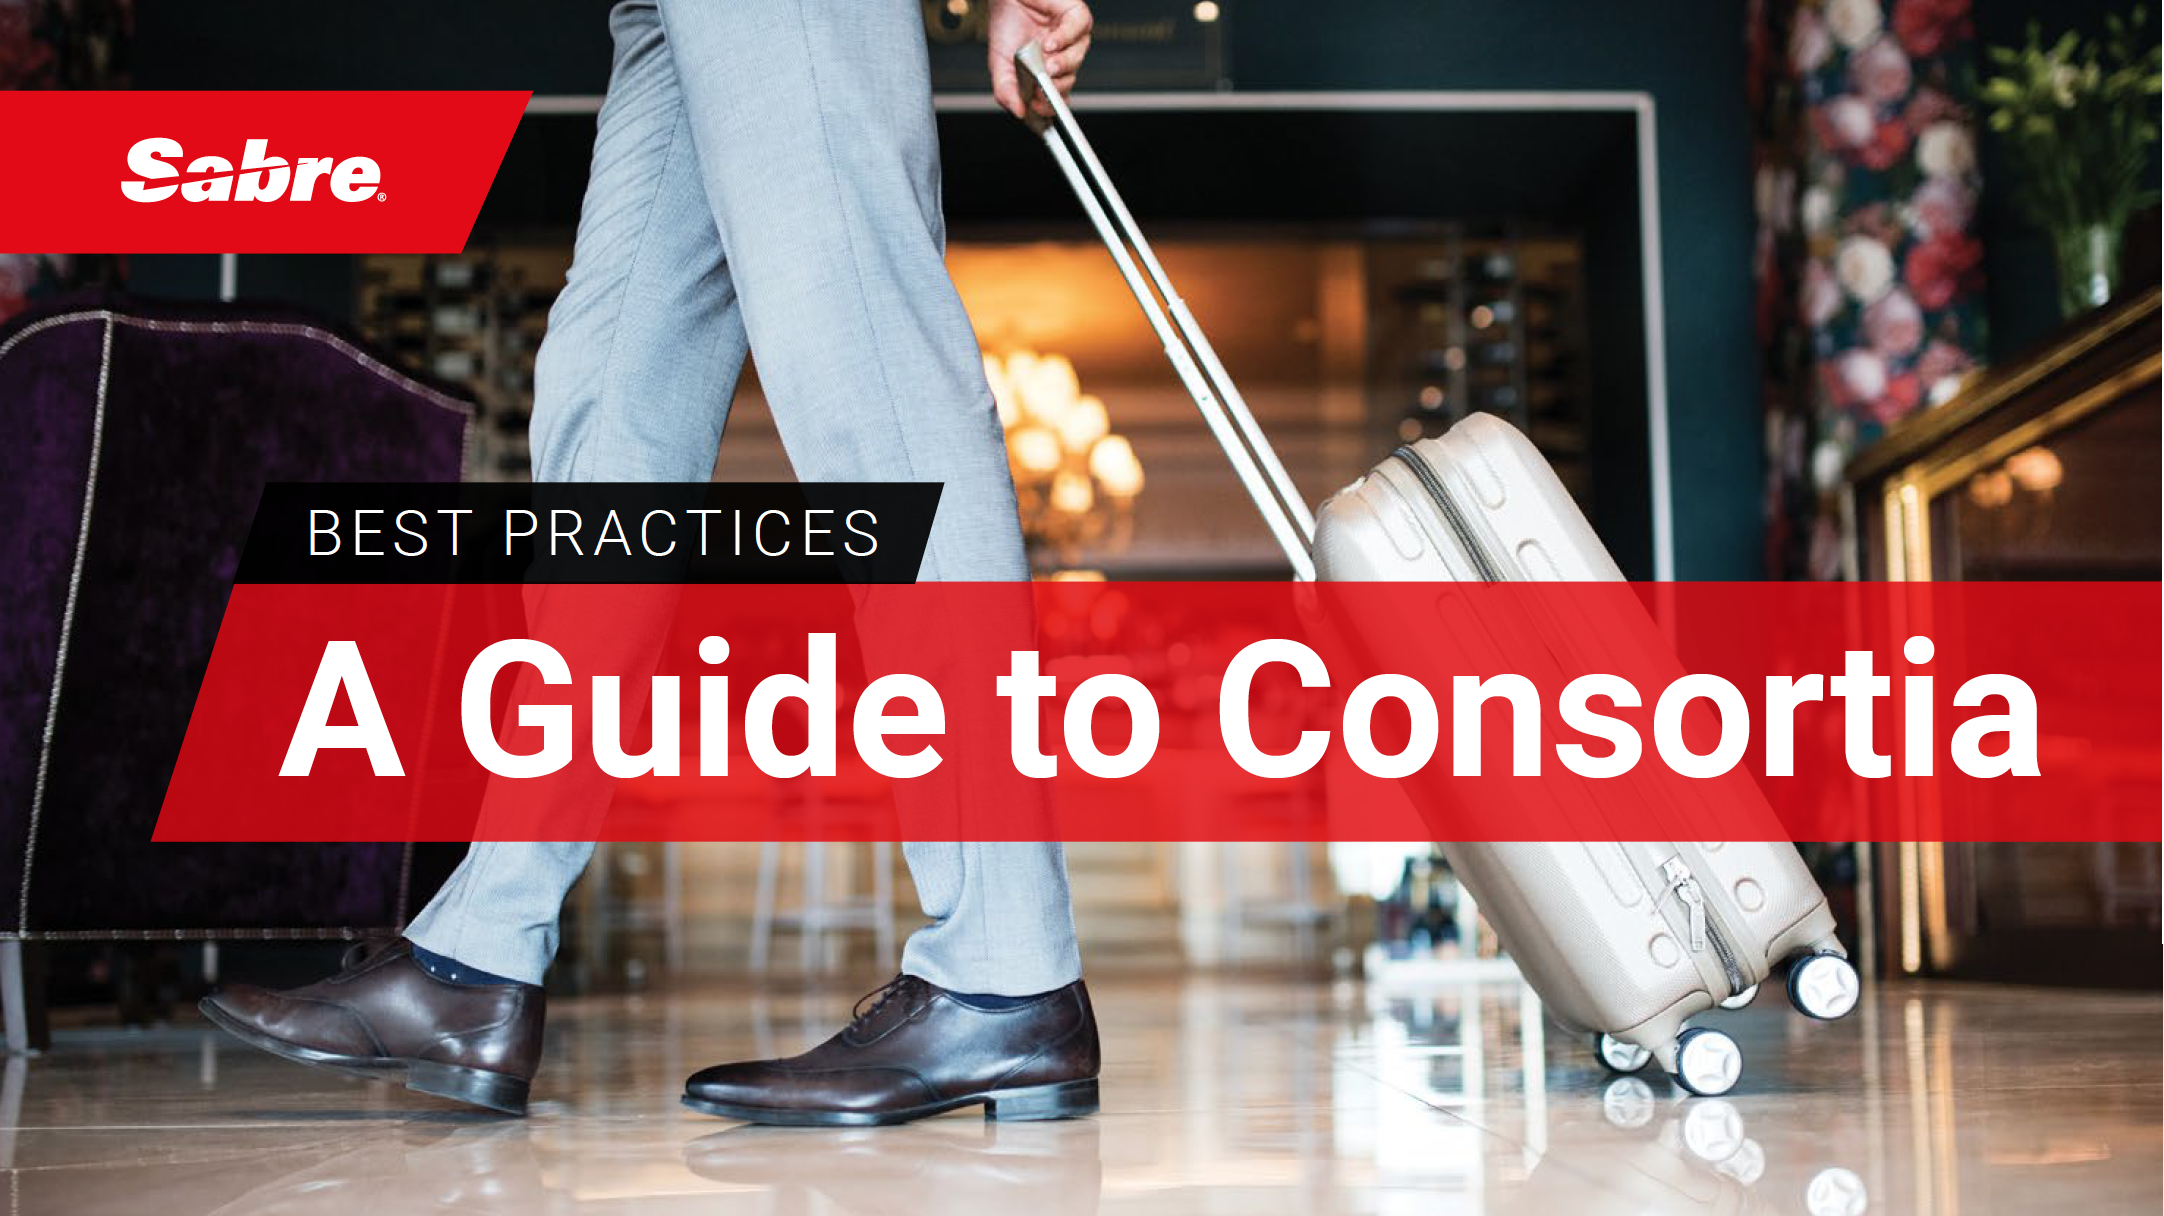 Download the guide to consortia